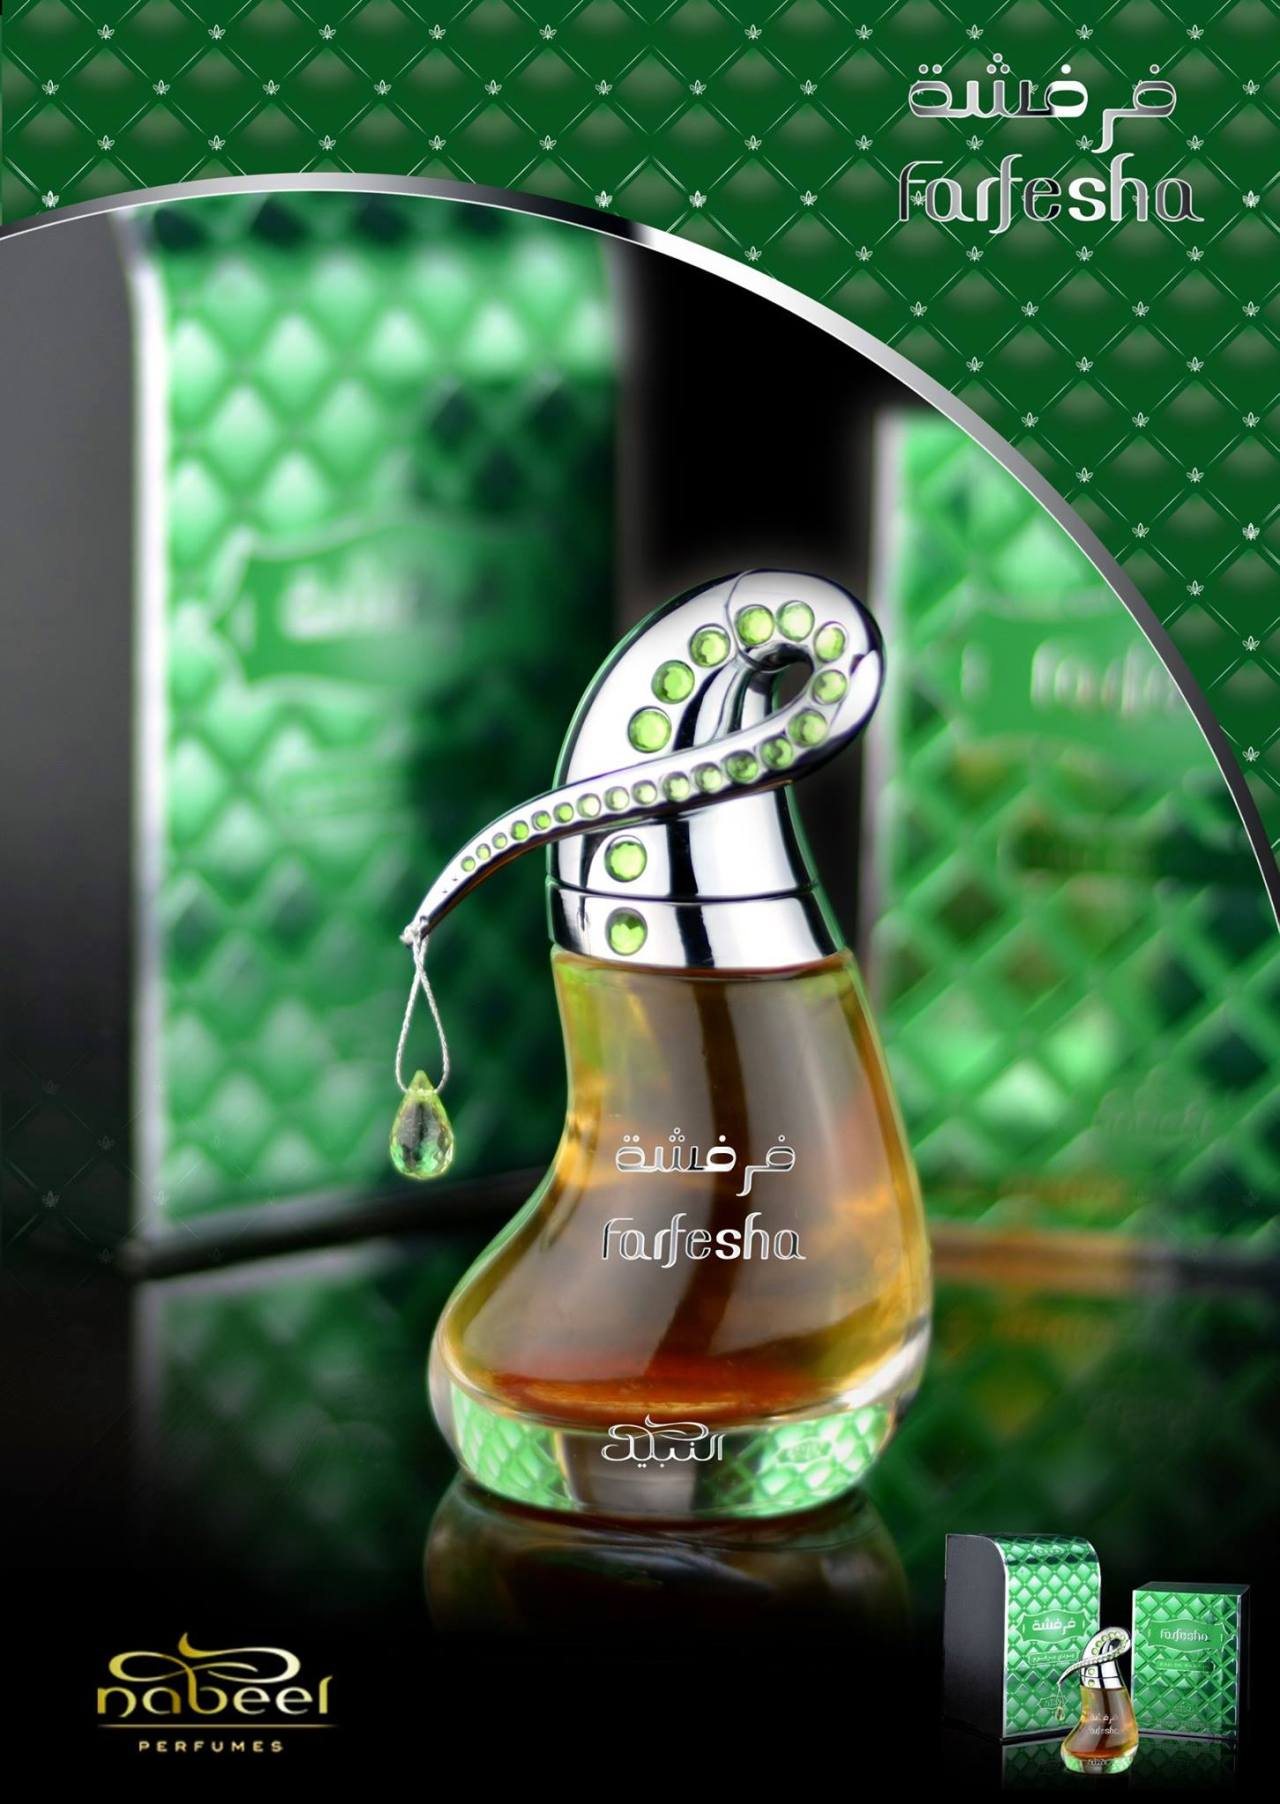 Farfesha - Eau De Parfum (60ml) by Nabeel - Premium Collection